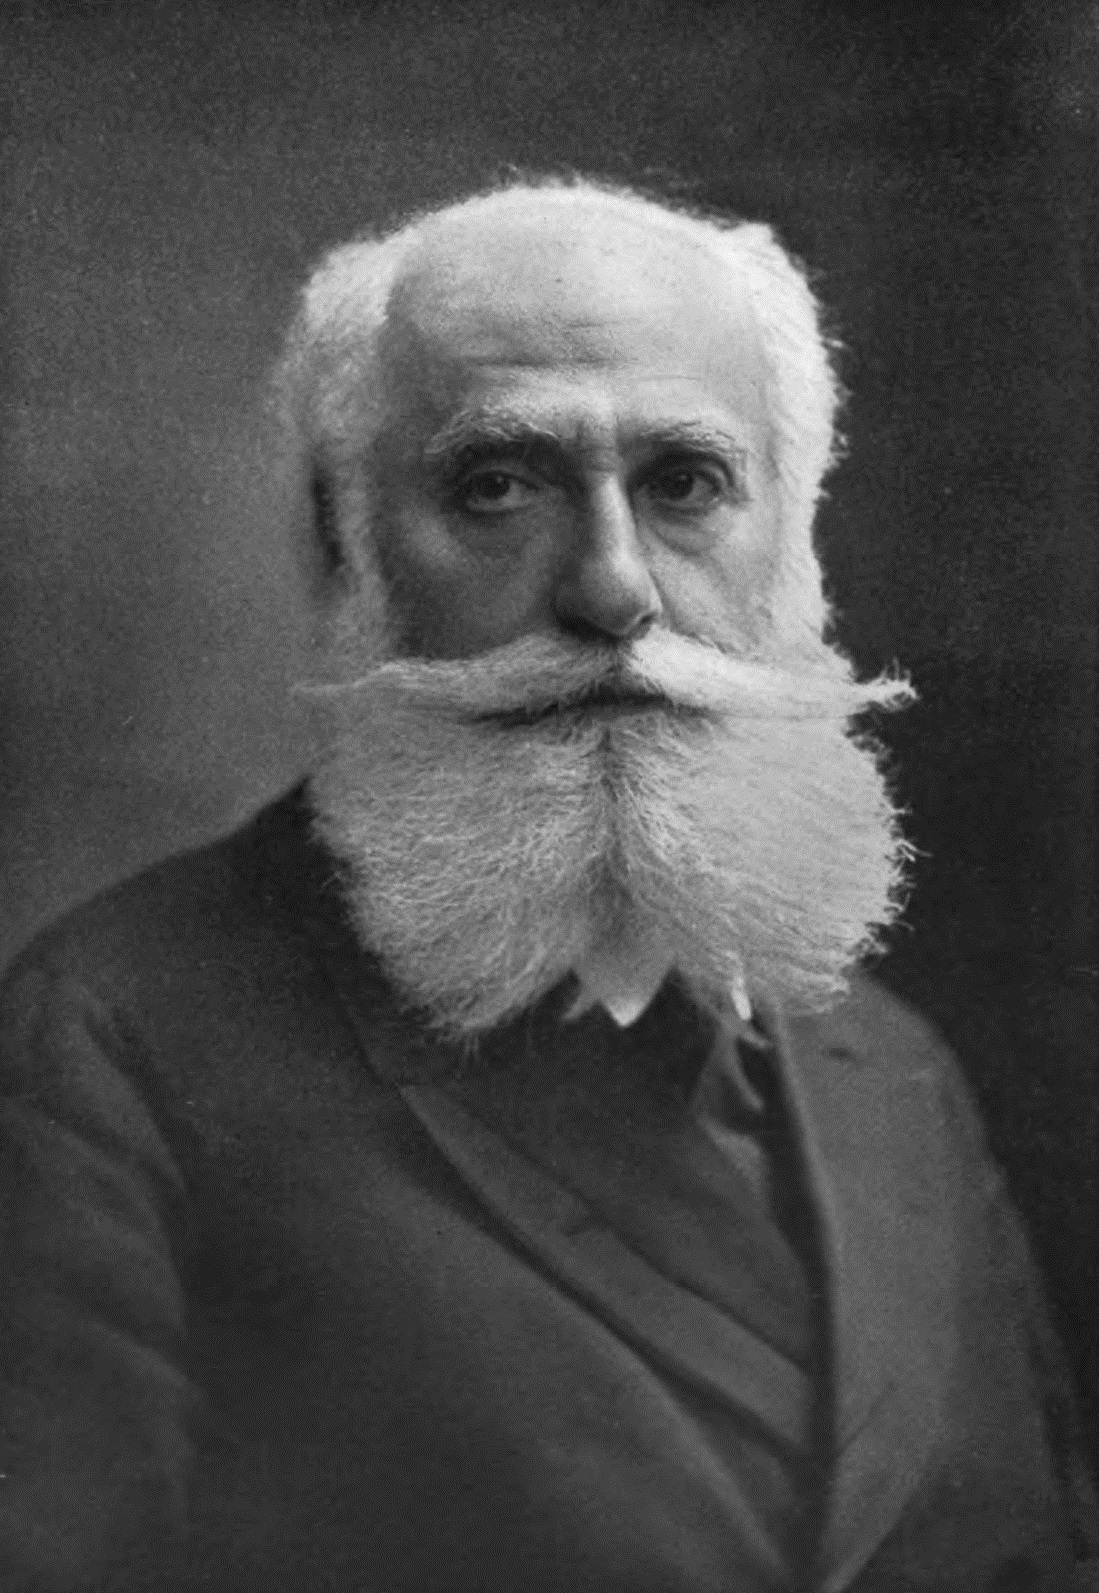 Max Nordau - man with big beard and handlebar mustache wearing a suite and tie